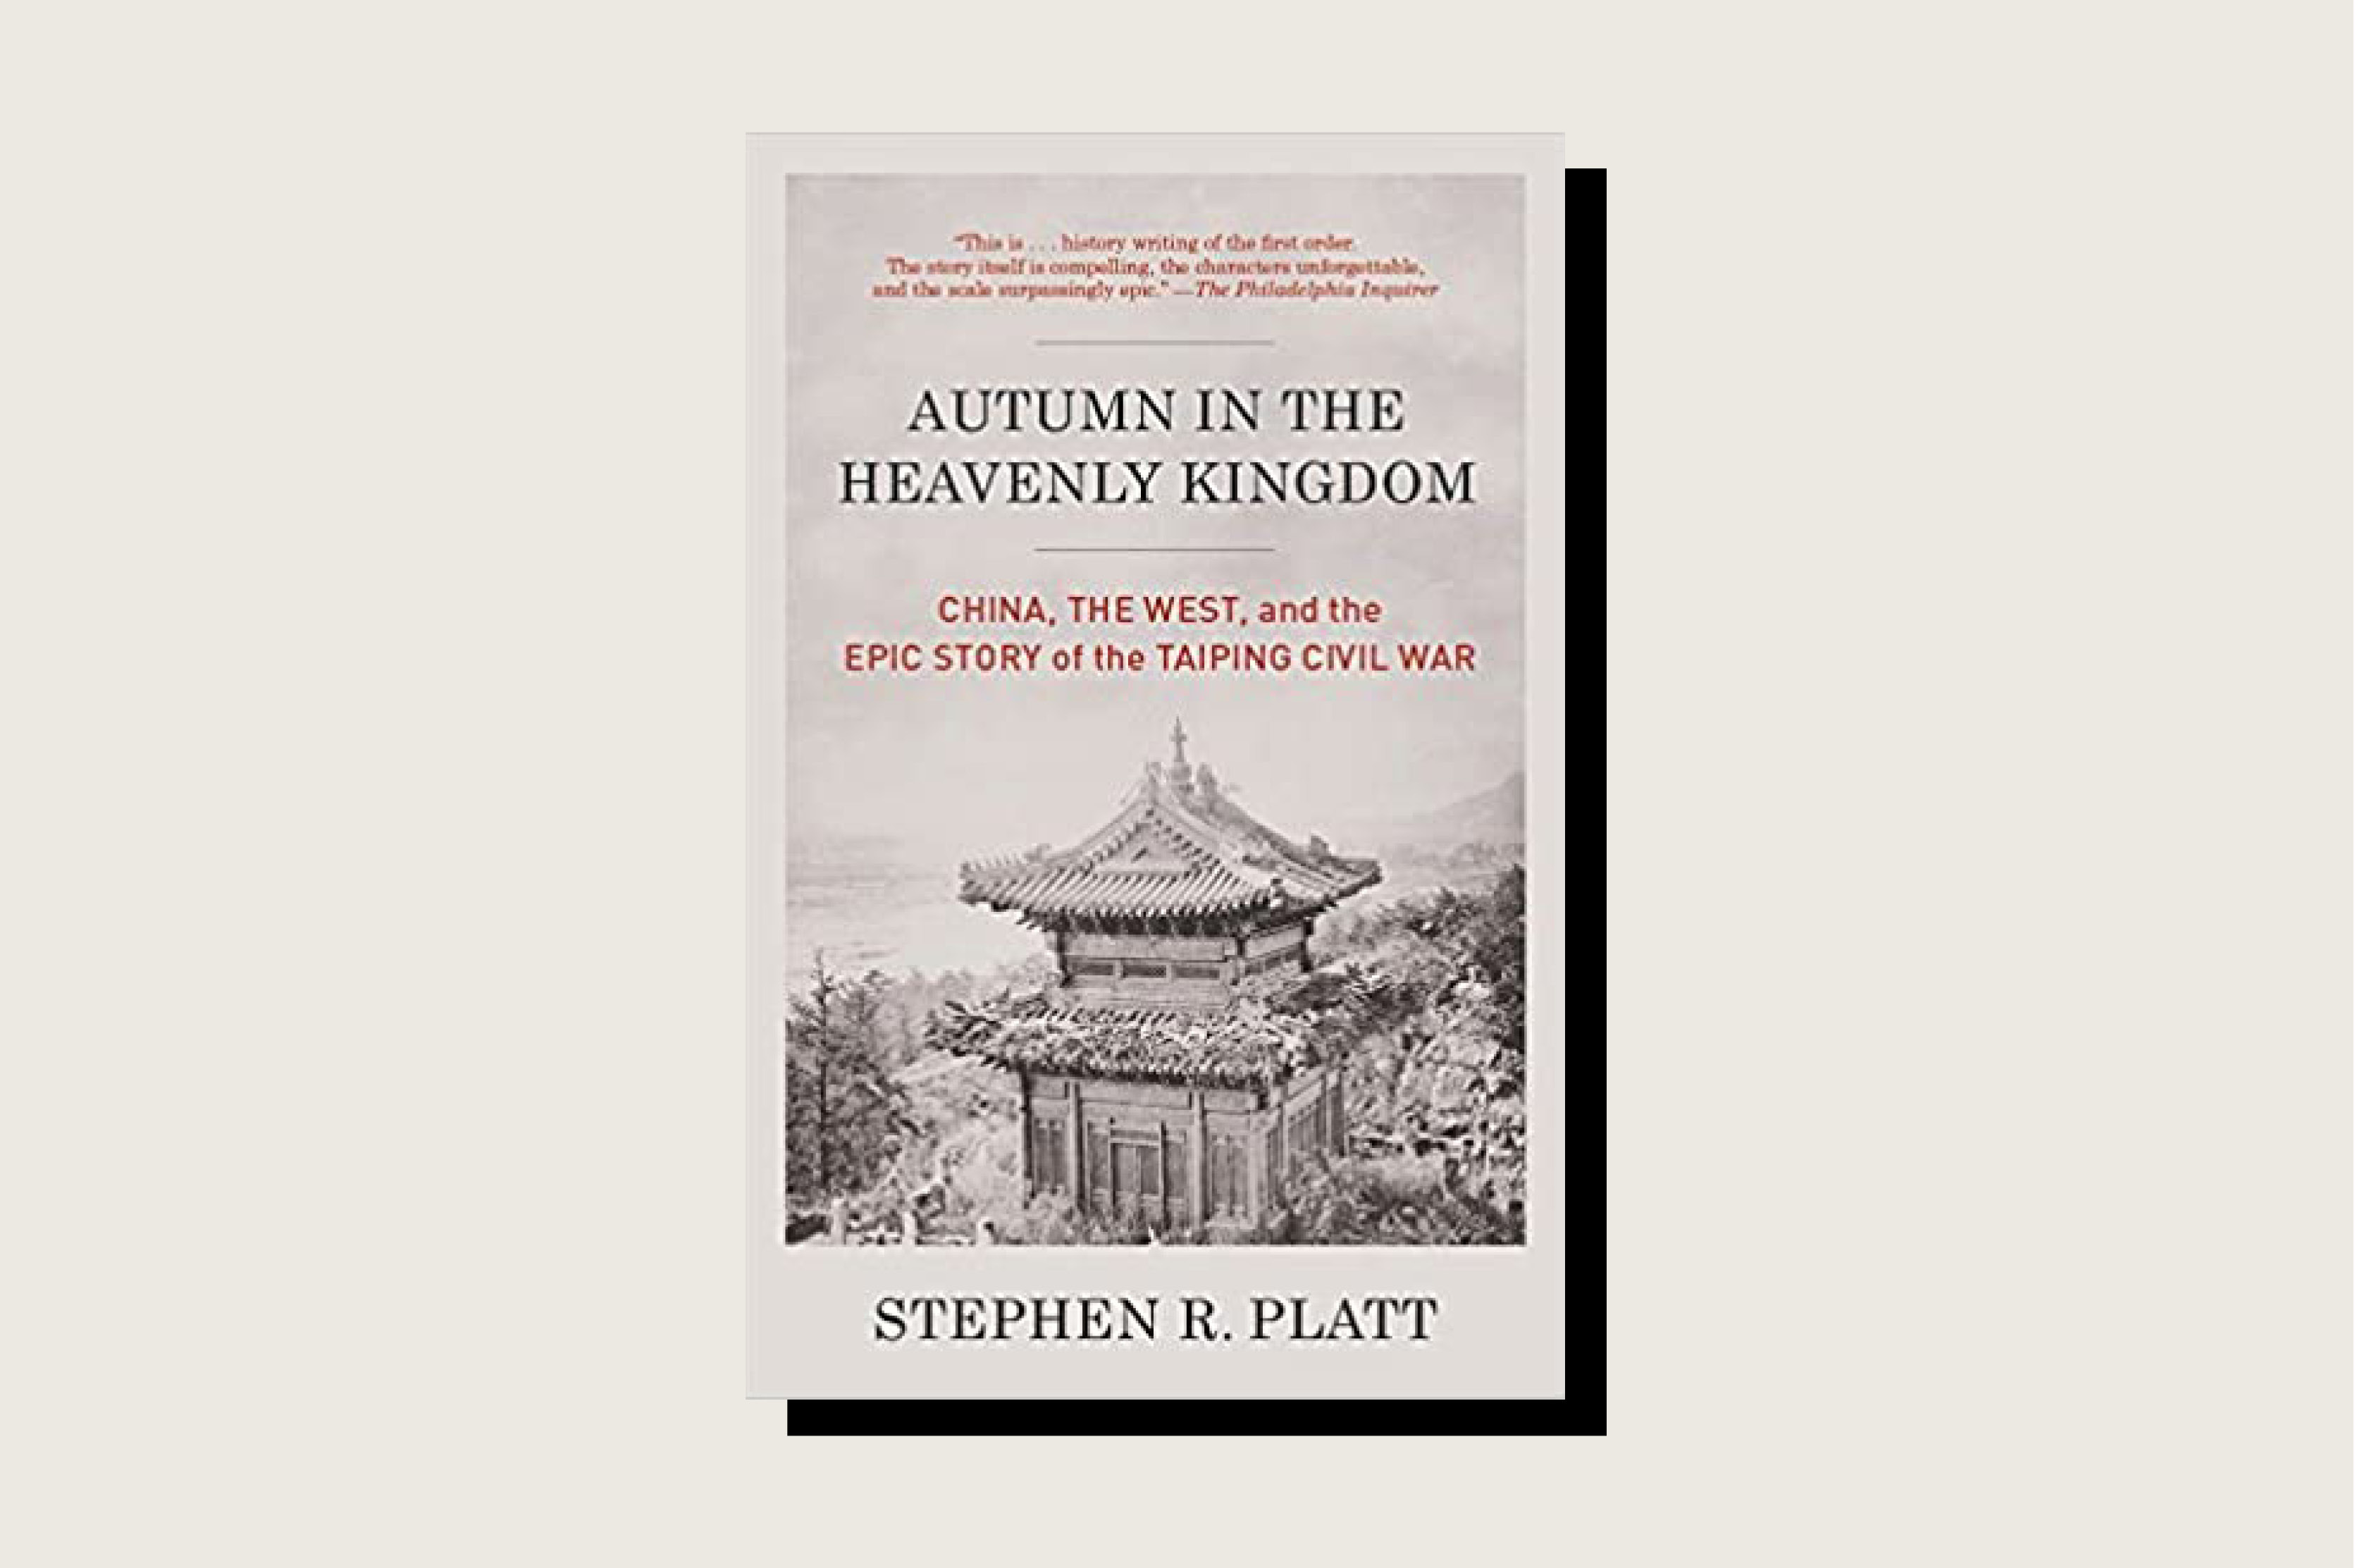 Autumn in the Heavenly Kingdom: China, the West, and the Epic Story of the Taiping Civil War, Stephen R. Platt, Vintage, 512pp., 2012.